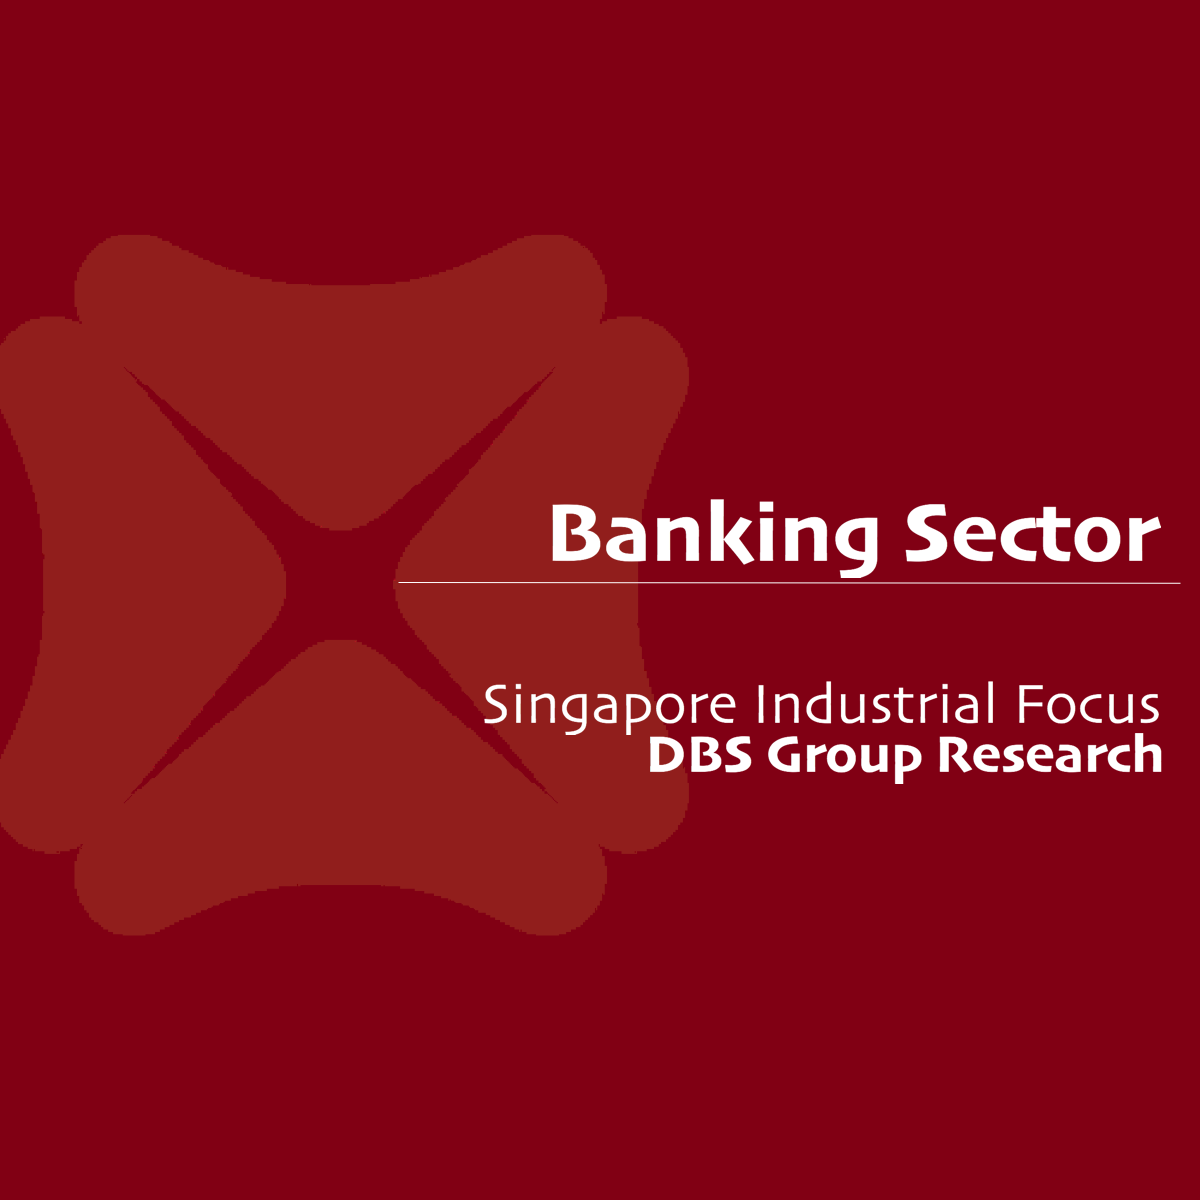 Bank - DBS Vickers 2016-12-14: 2017 Sector Outlook ~ There is hope